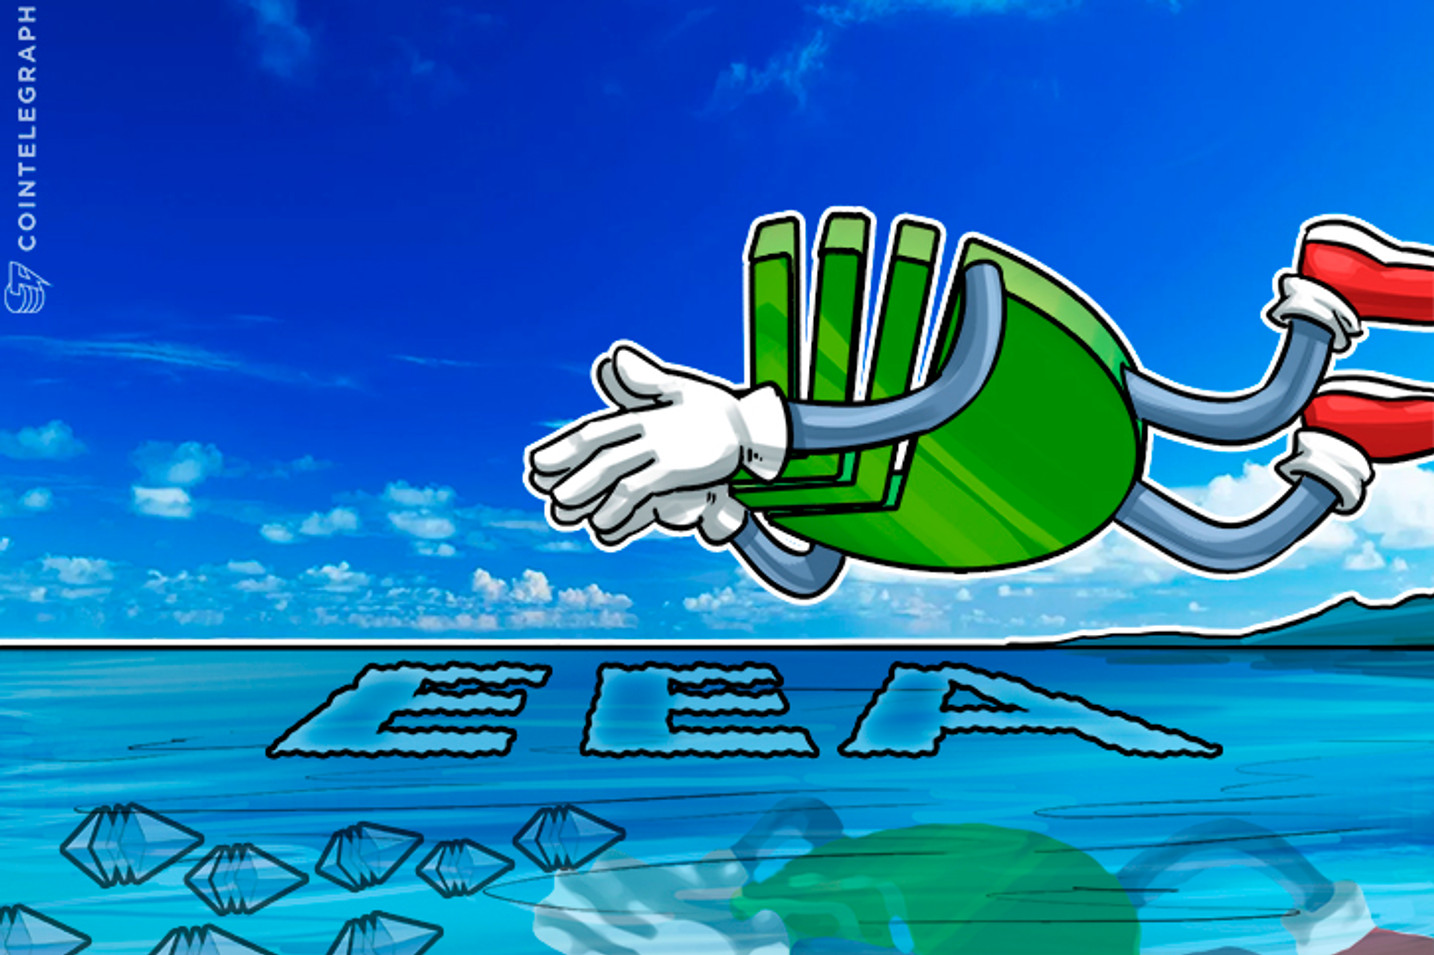 Sberbank, Russia's Largest State-Owned Bank, is Eyeing Ethereum Integration